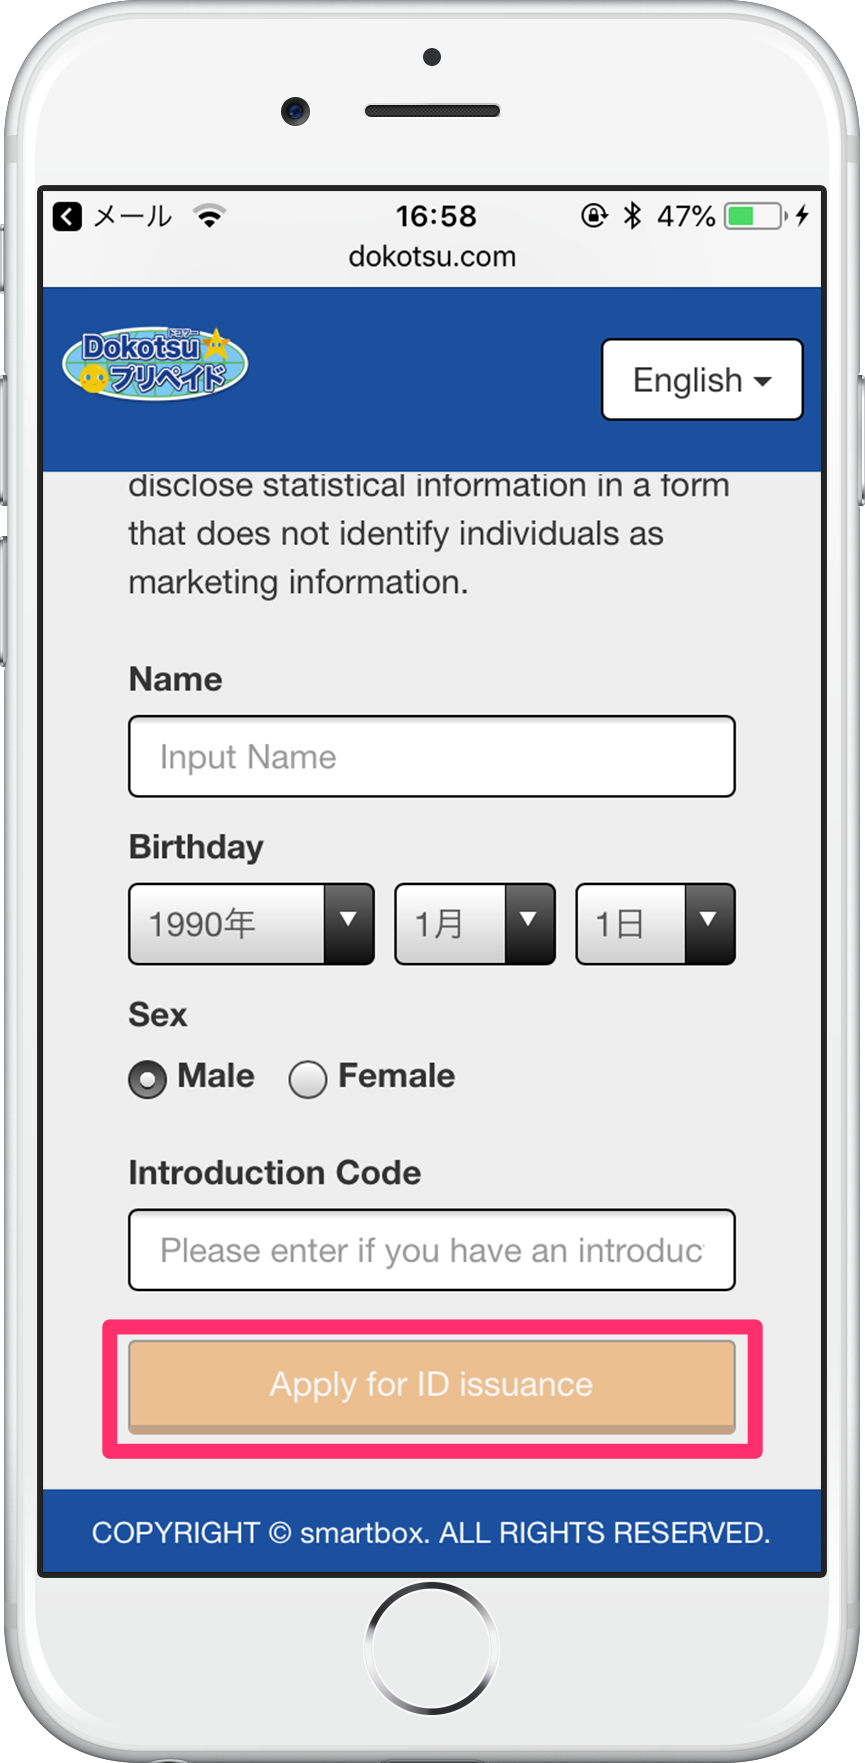 Please Enter Your Name Date Of Birth And Gender For The ID Issuance Procedure Tap Apply